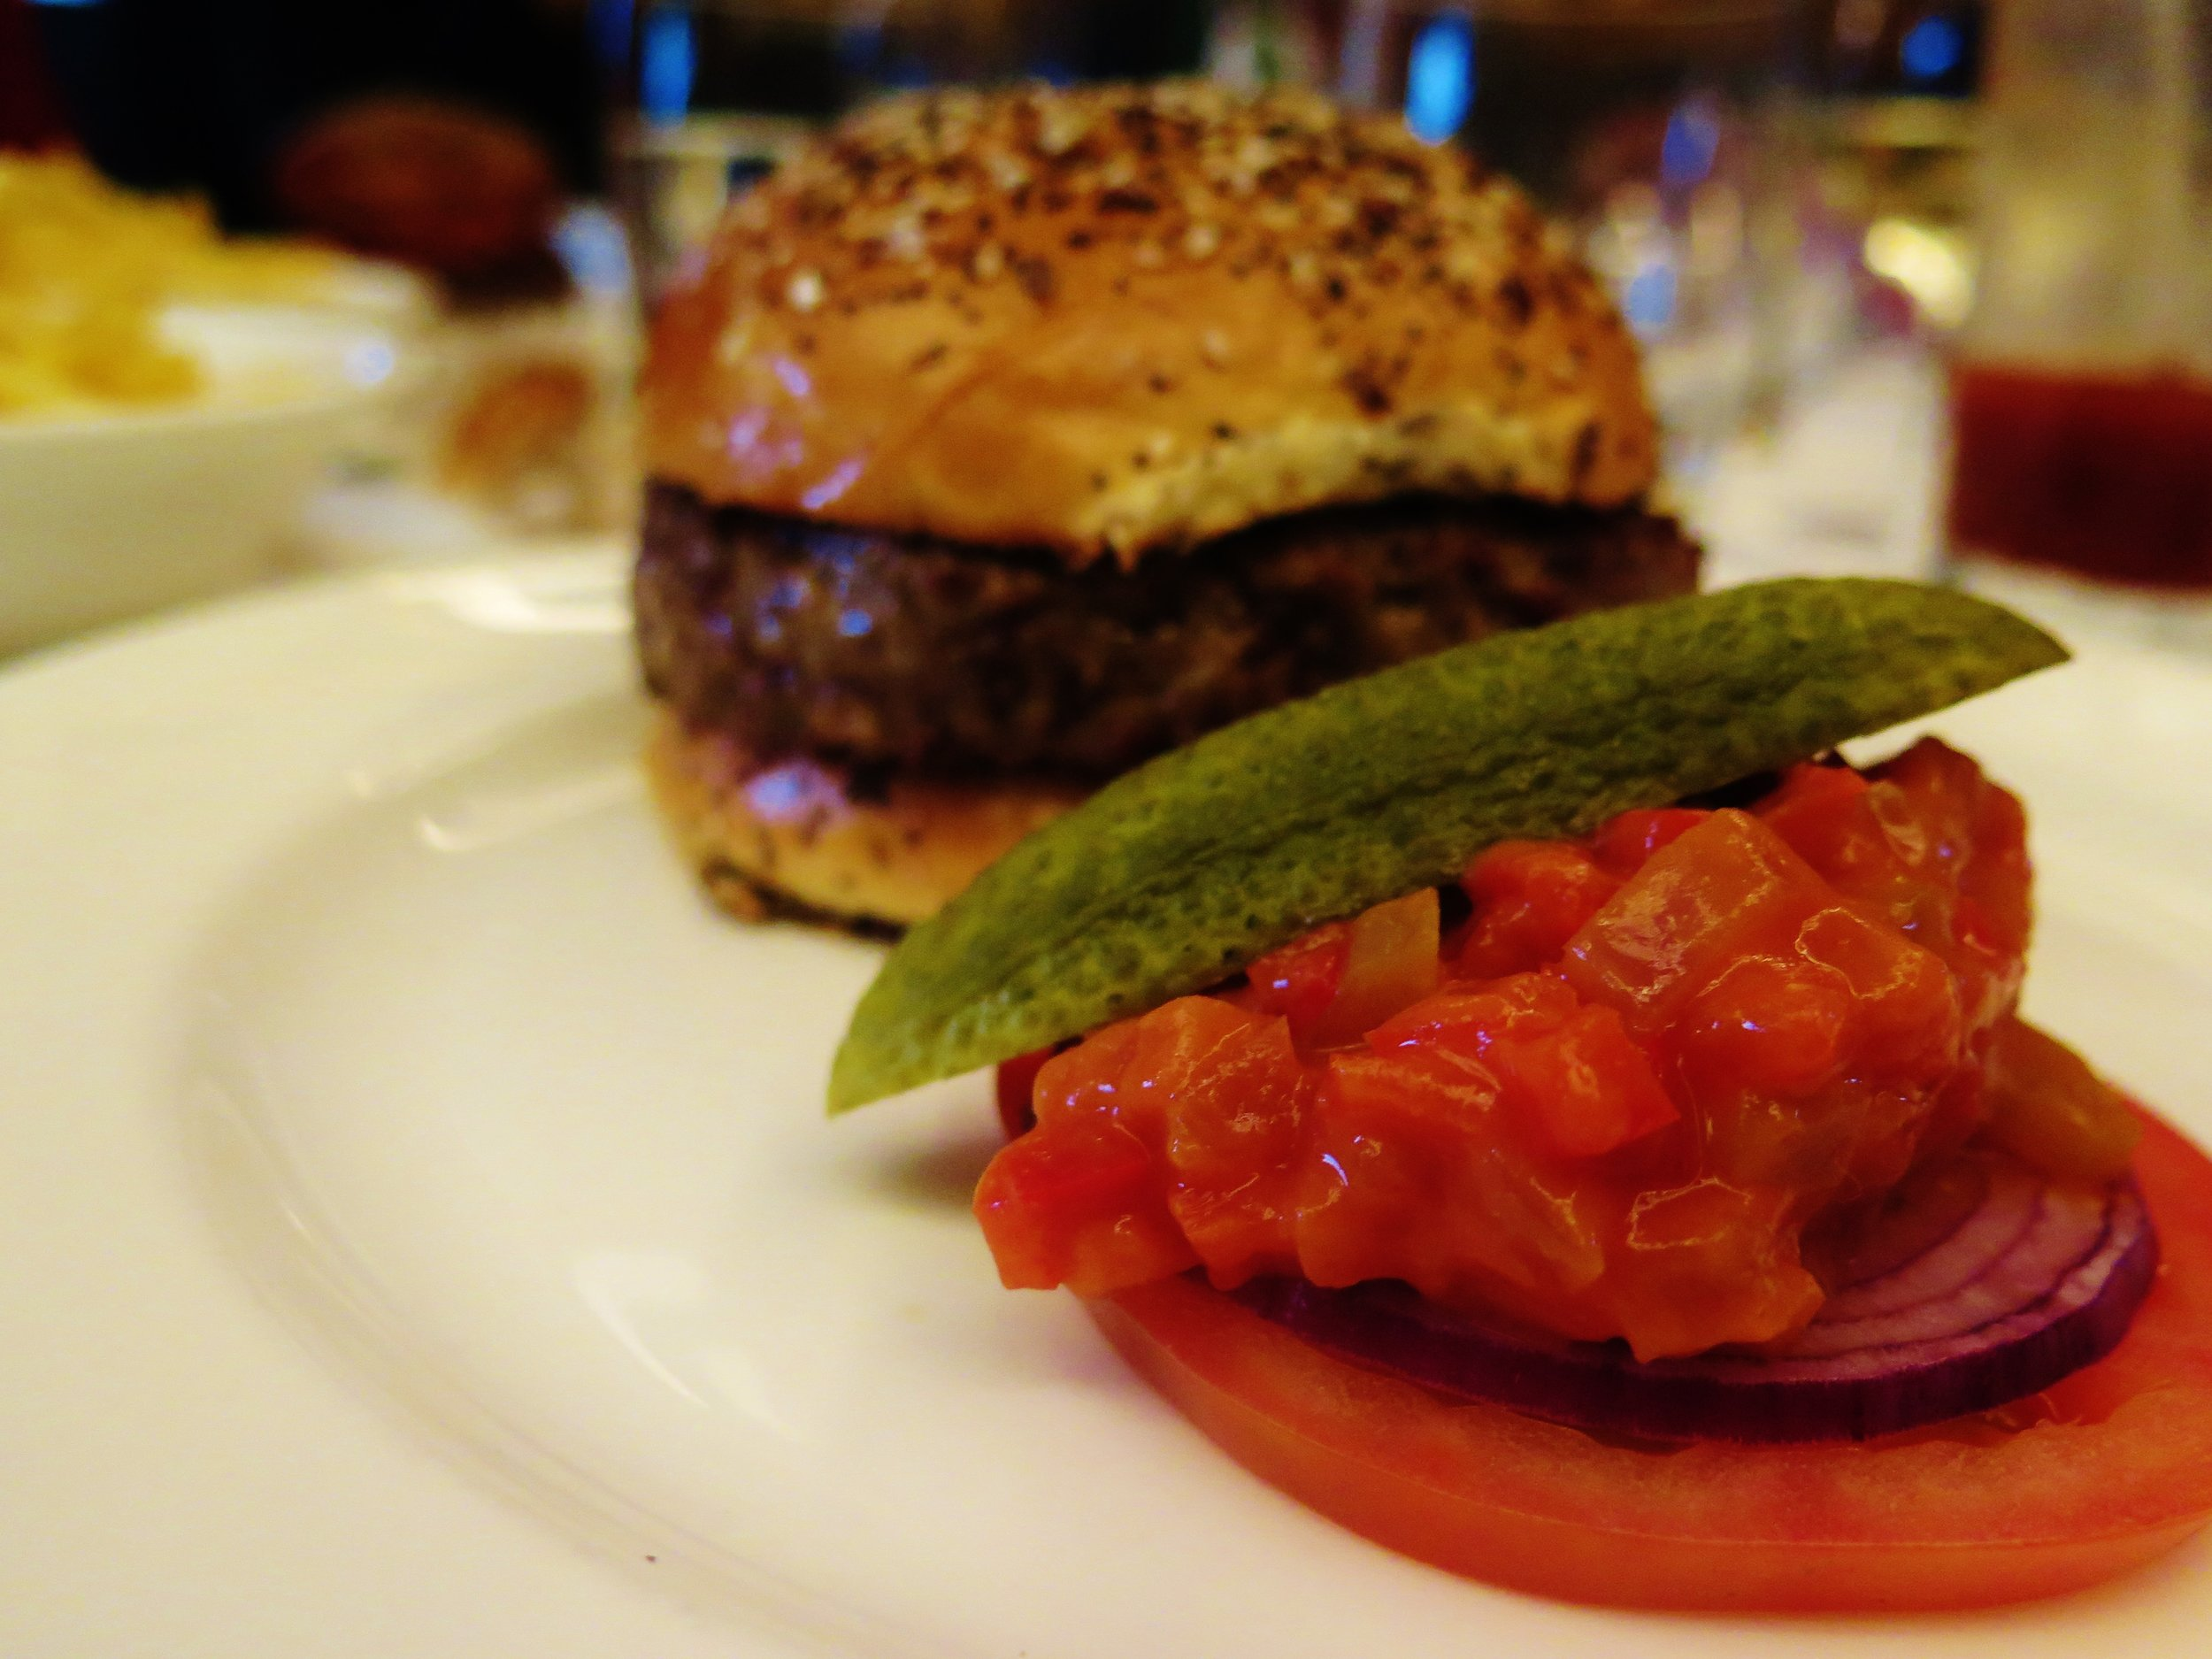 The Caprice burger, Le Caprice